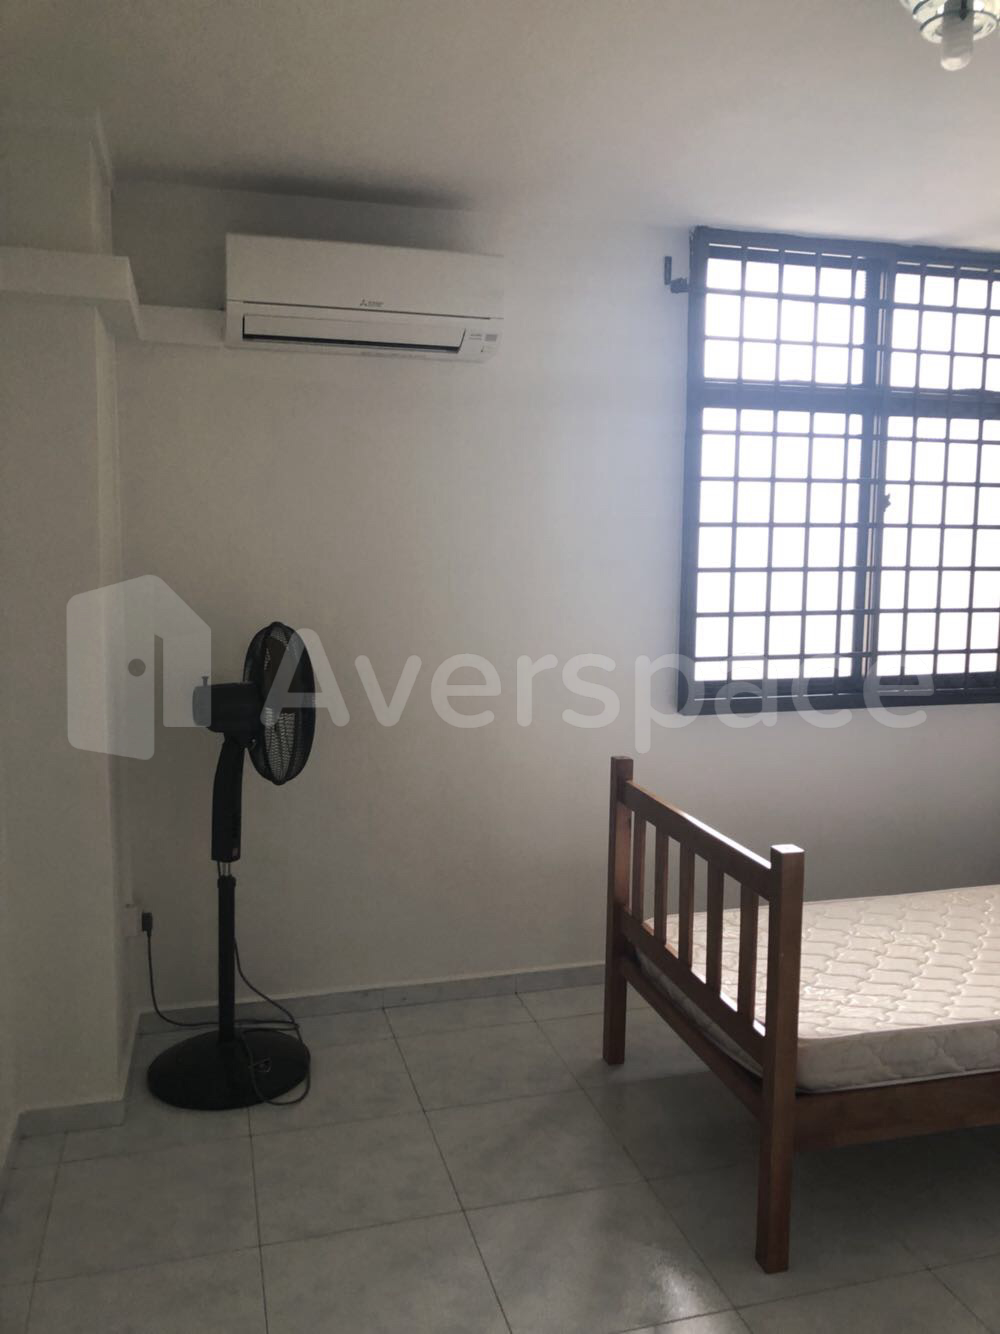 928 Hougang Street 91, District 19 Singapore